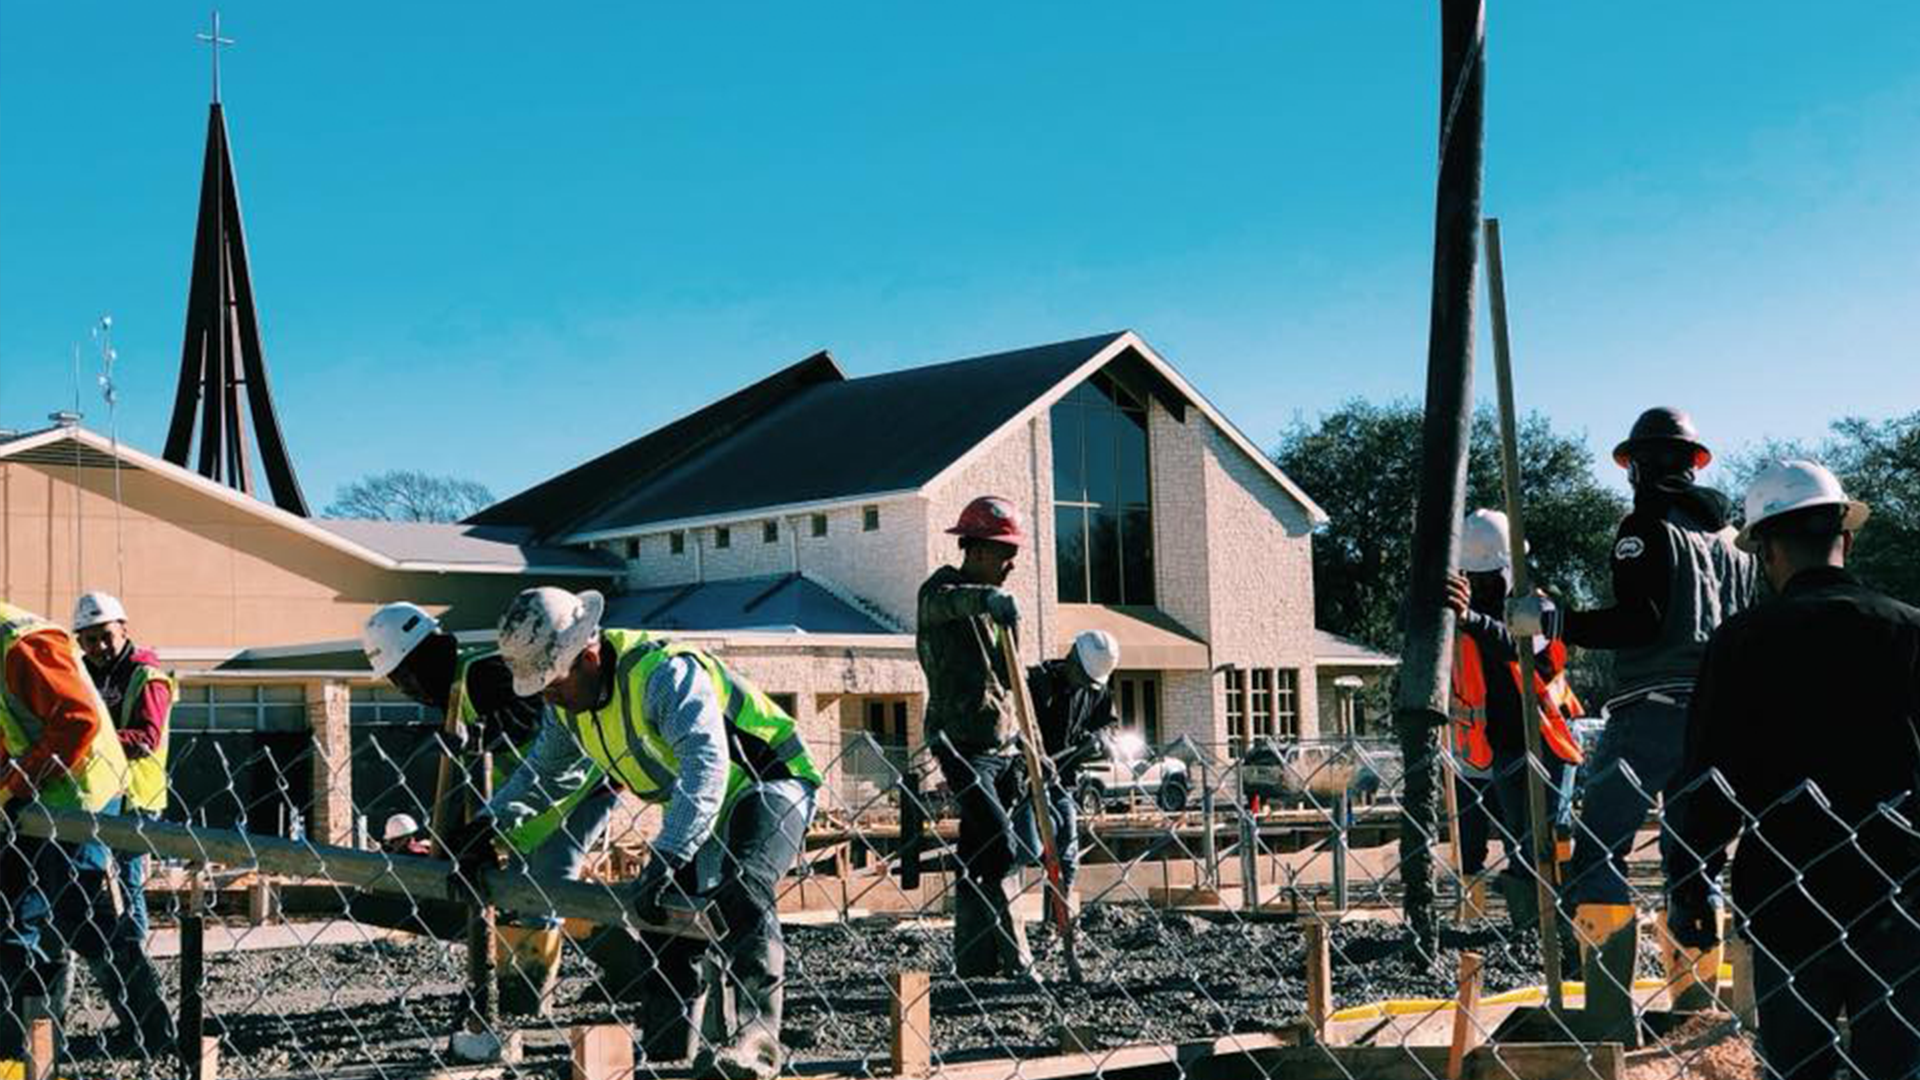 Build for the future - The Redeemer Campus Expansion Fund supports the cost for new buildings as well as campus and building improvements. Our desire is that our campus is able to support existing ministry needs with room to grow so that new people to our community can connect with Jesus and each other.